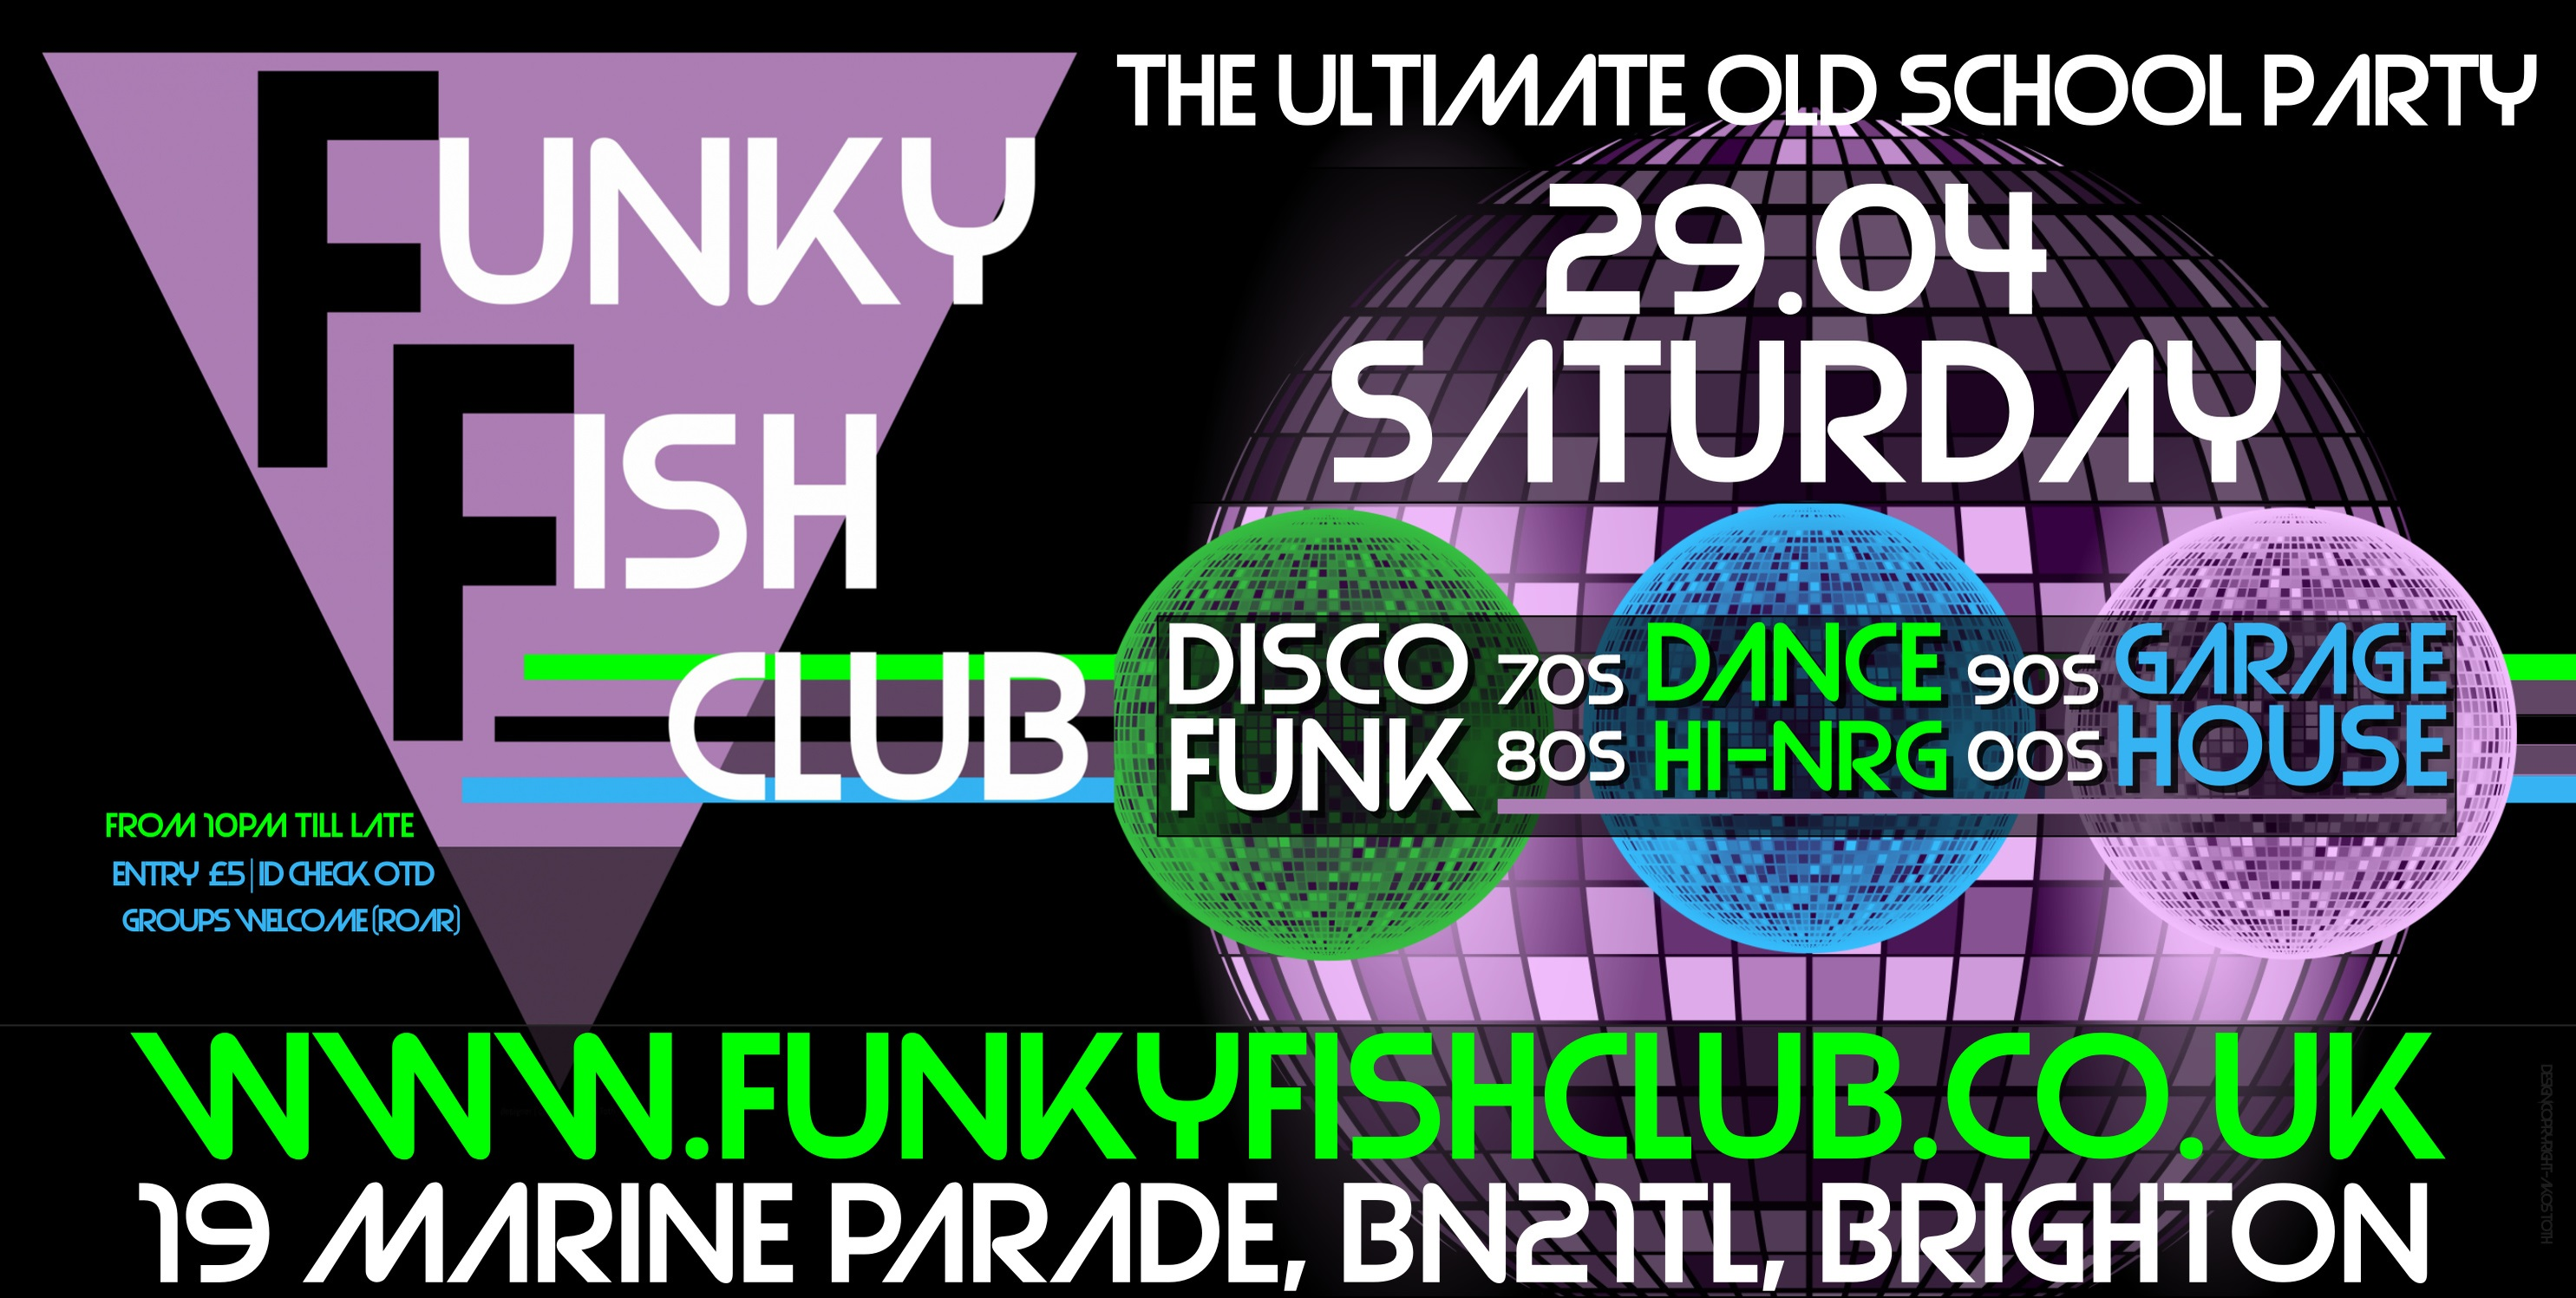 SATURDAY - THE ULTIMATE OLD SCHOOL PARTY